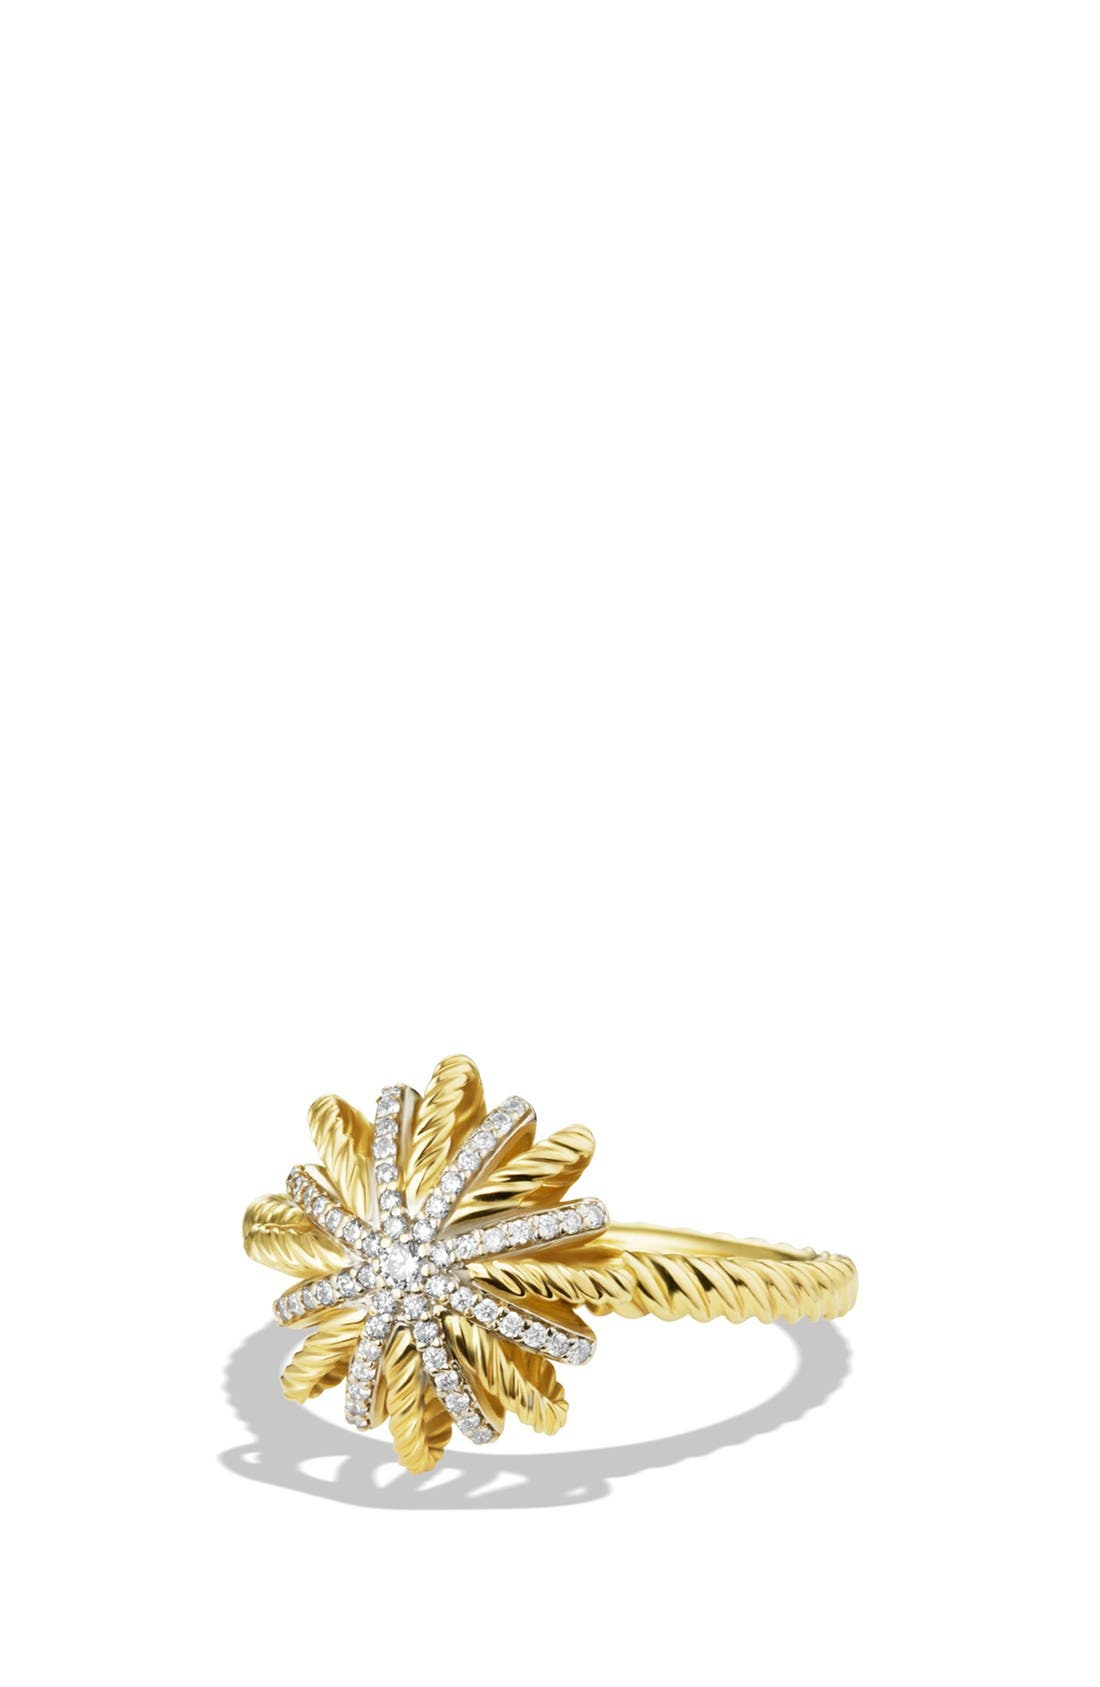 David Yurman 'Starburst' Ring with Diamonds in Gold